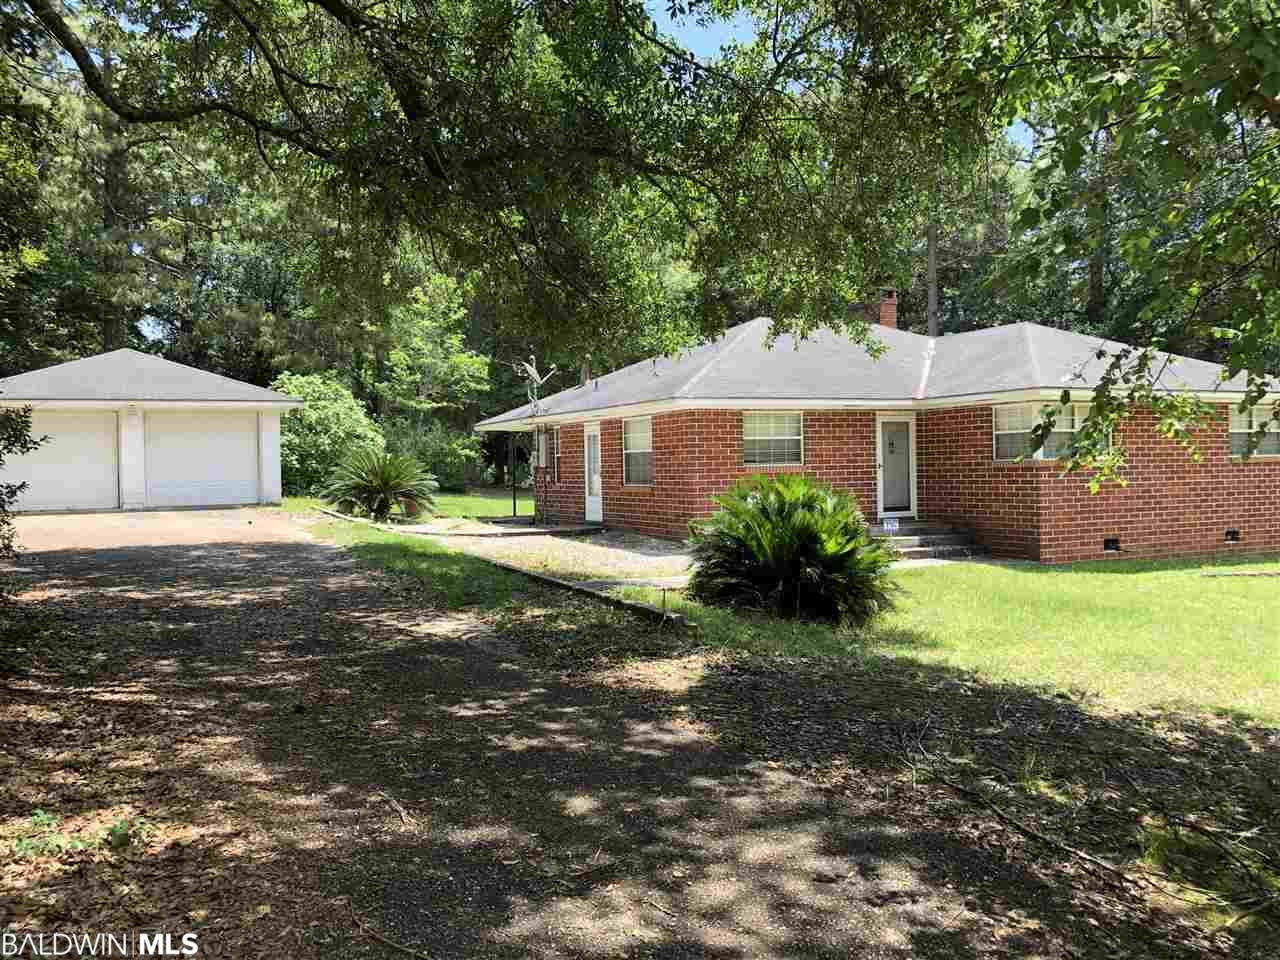 365 Gaines Ave, Mobile, AL 36609